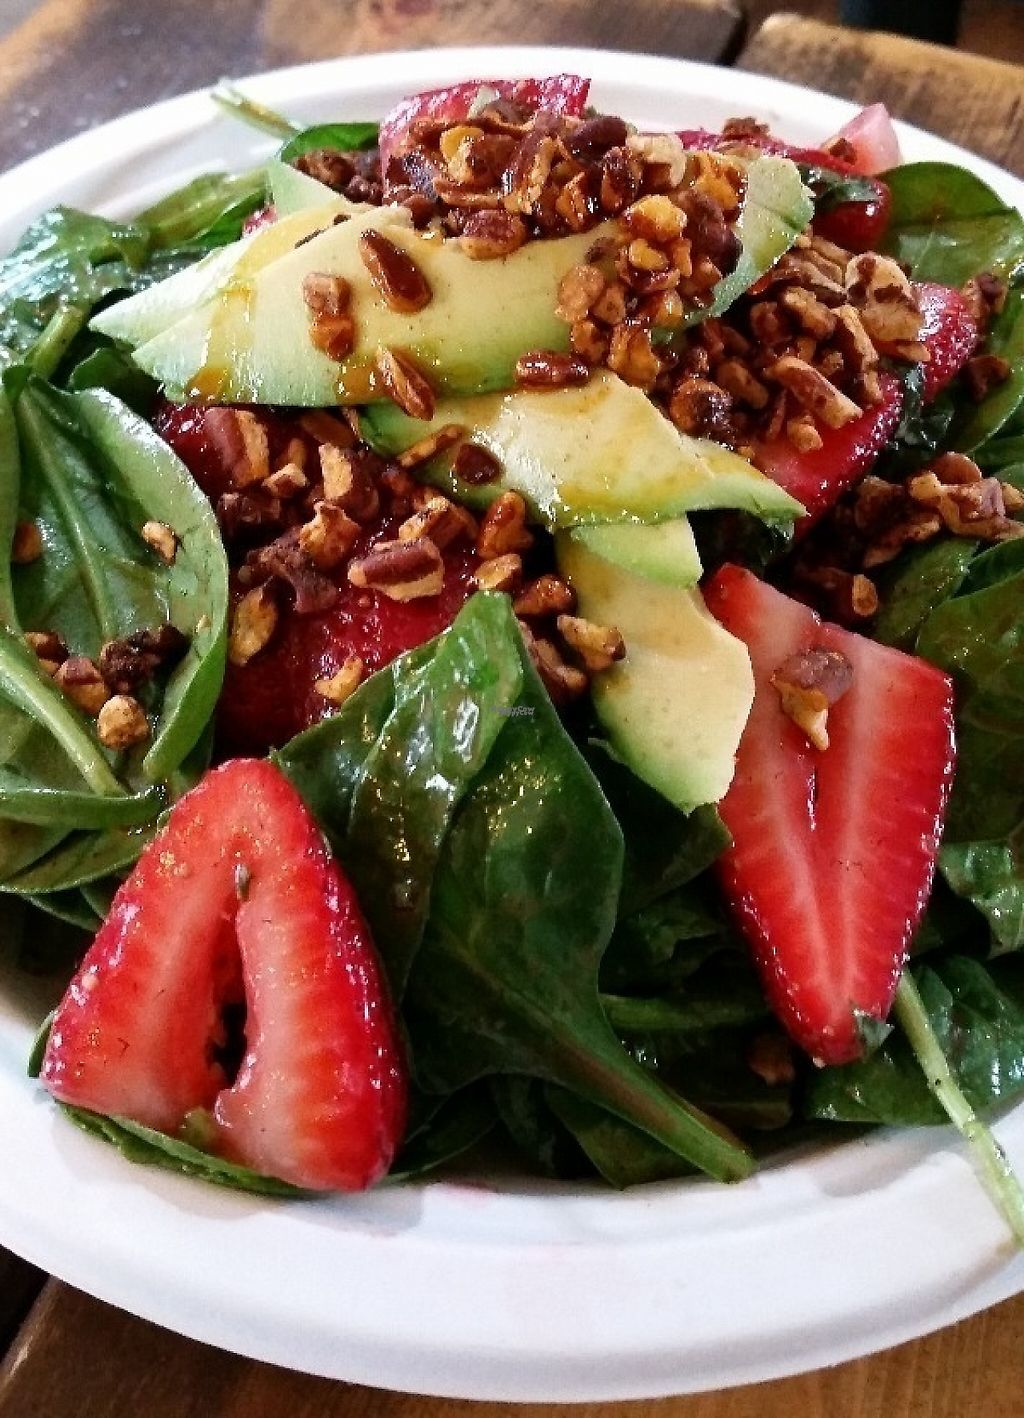 """Photo of A Broken Angel - Food Cart  by <a href=""""/members/profile/Beezelbarb"""">Beezelbarb</a> <br/>Balsamic spring greens salad with basil macerated strawberries, spicy candied pecans, and avocado <br/> October 26, 2016  - <a href='/contact/abuse/image/70816/218741'>Report</a>"""